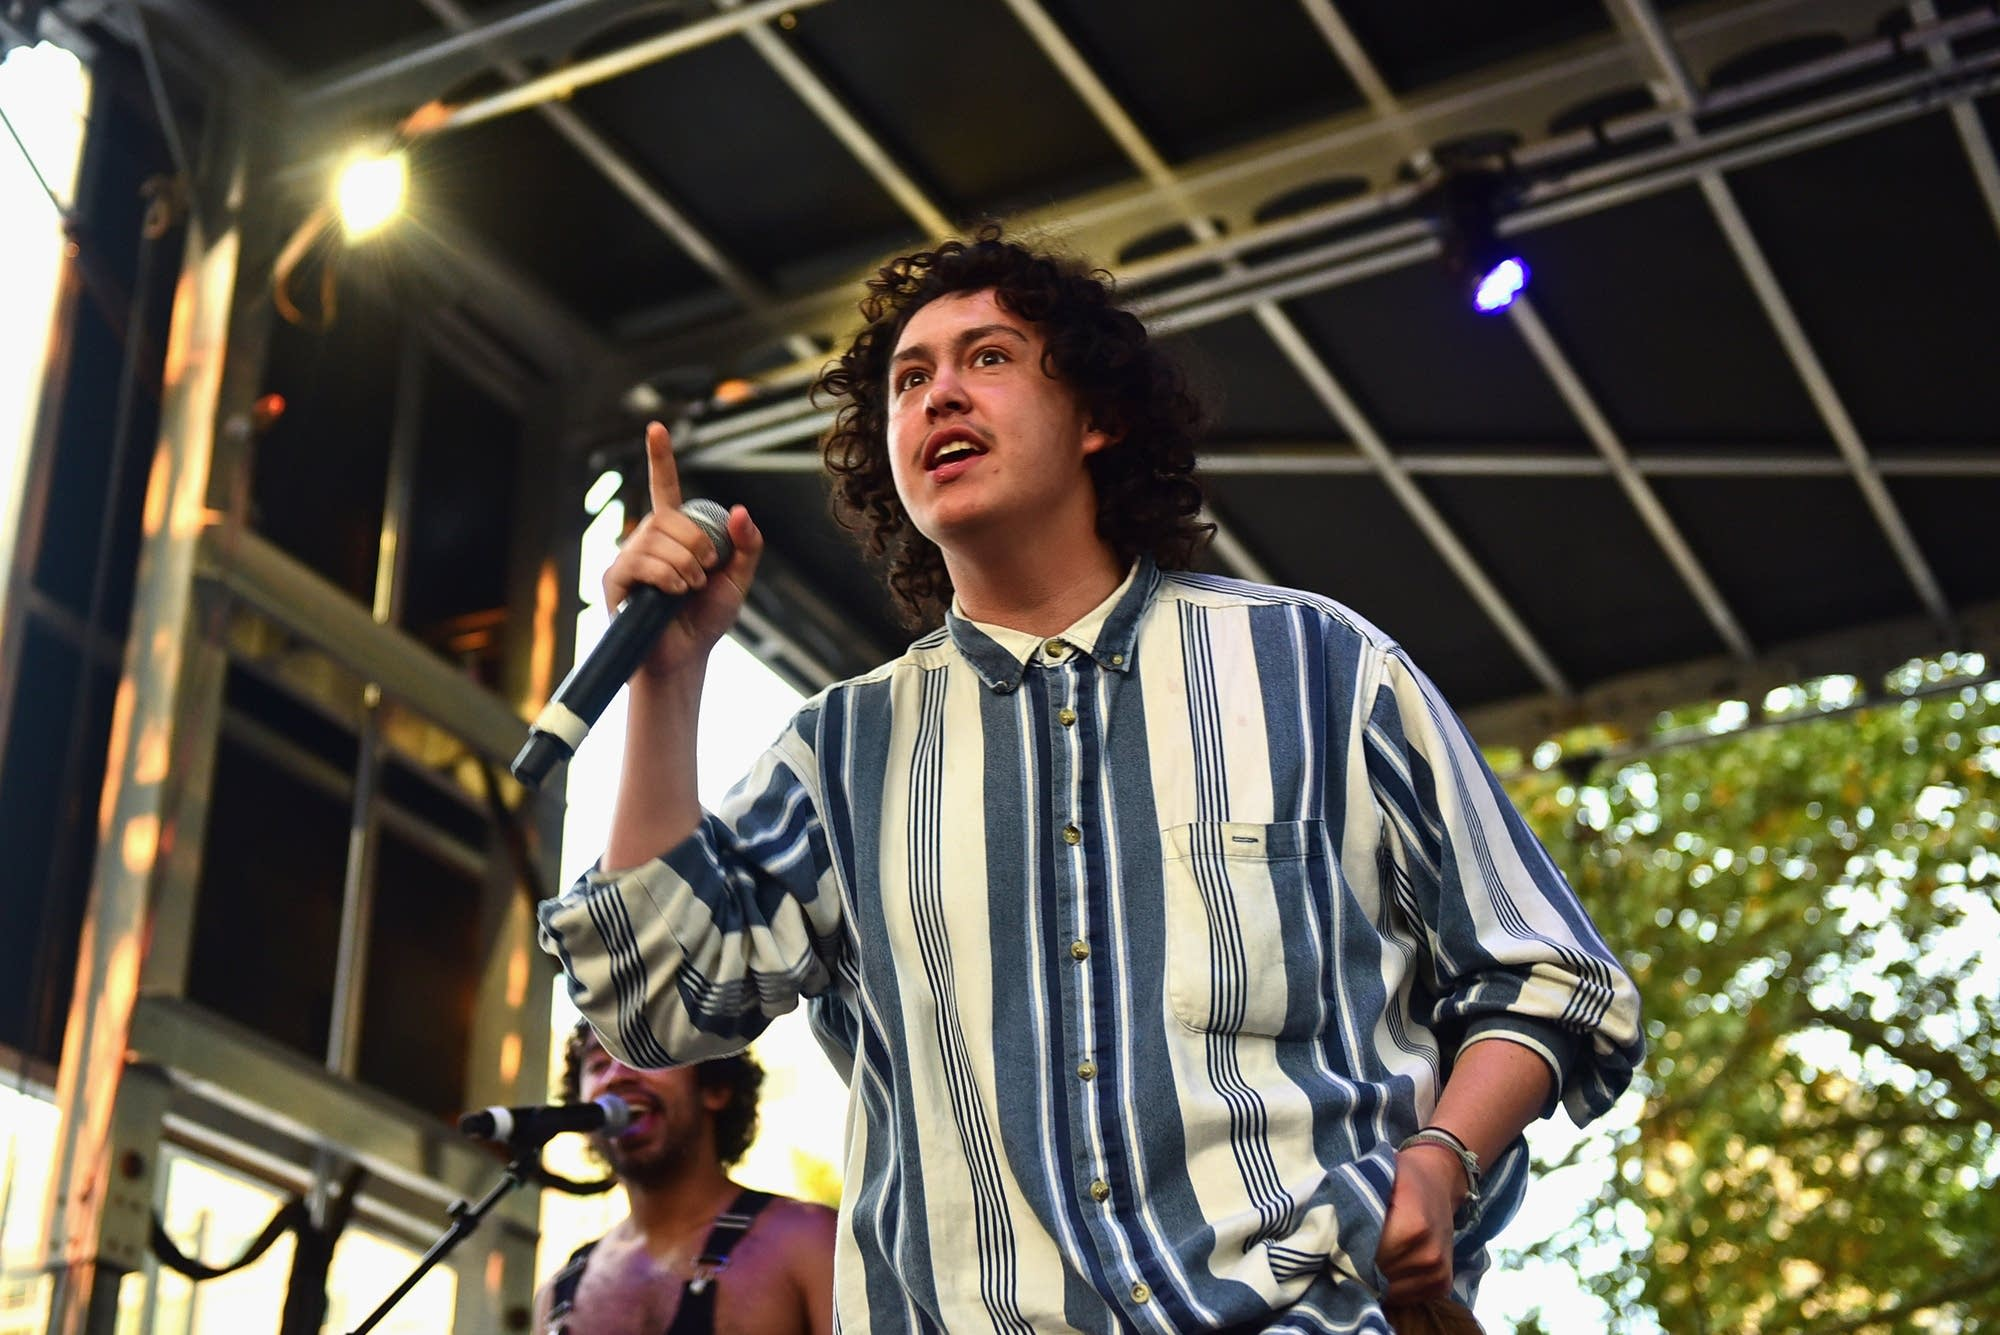 Hobo Johnson performs at 2018 Made in America Festival